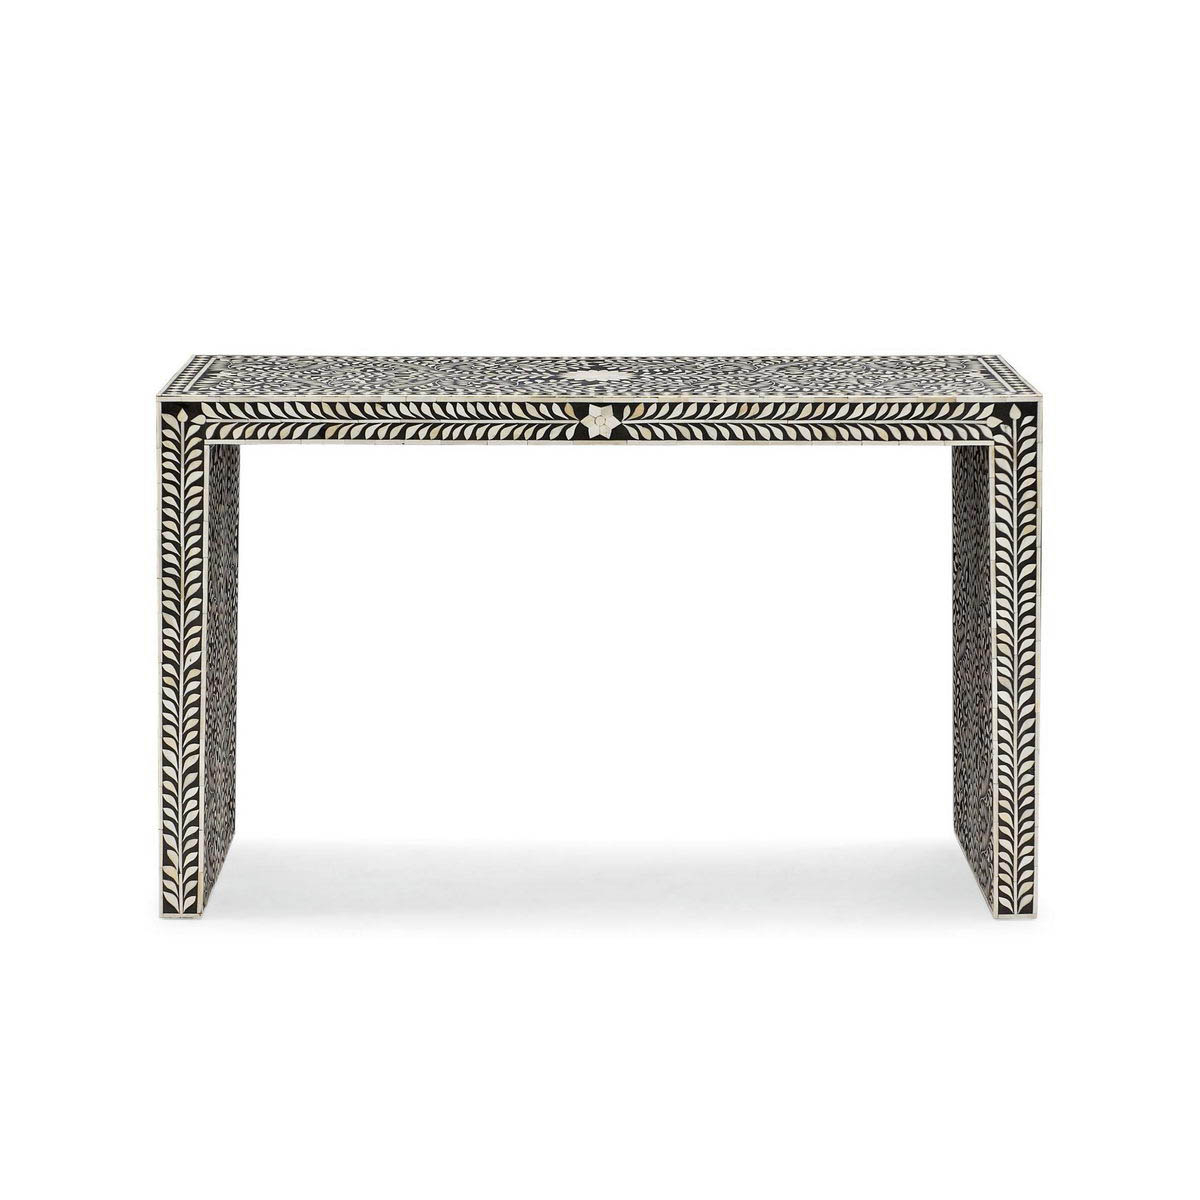 Console Tables Archives – Variety Arts Emporium Pertaining To Archive Grey Console Tables (View 7 of 30)